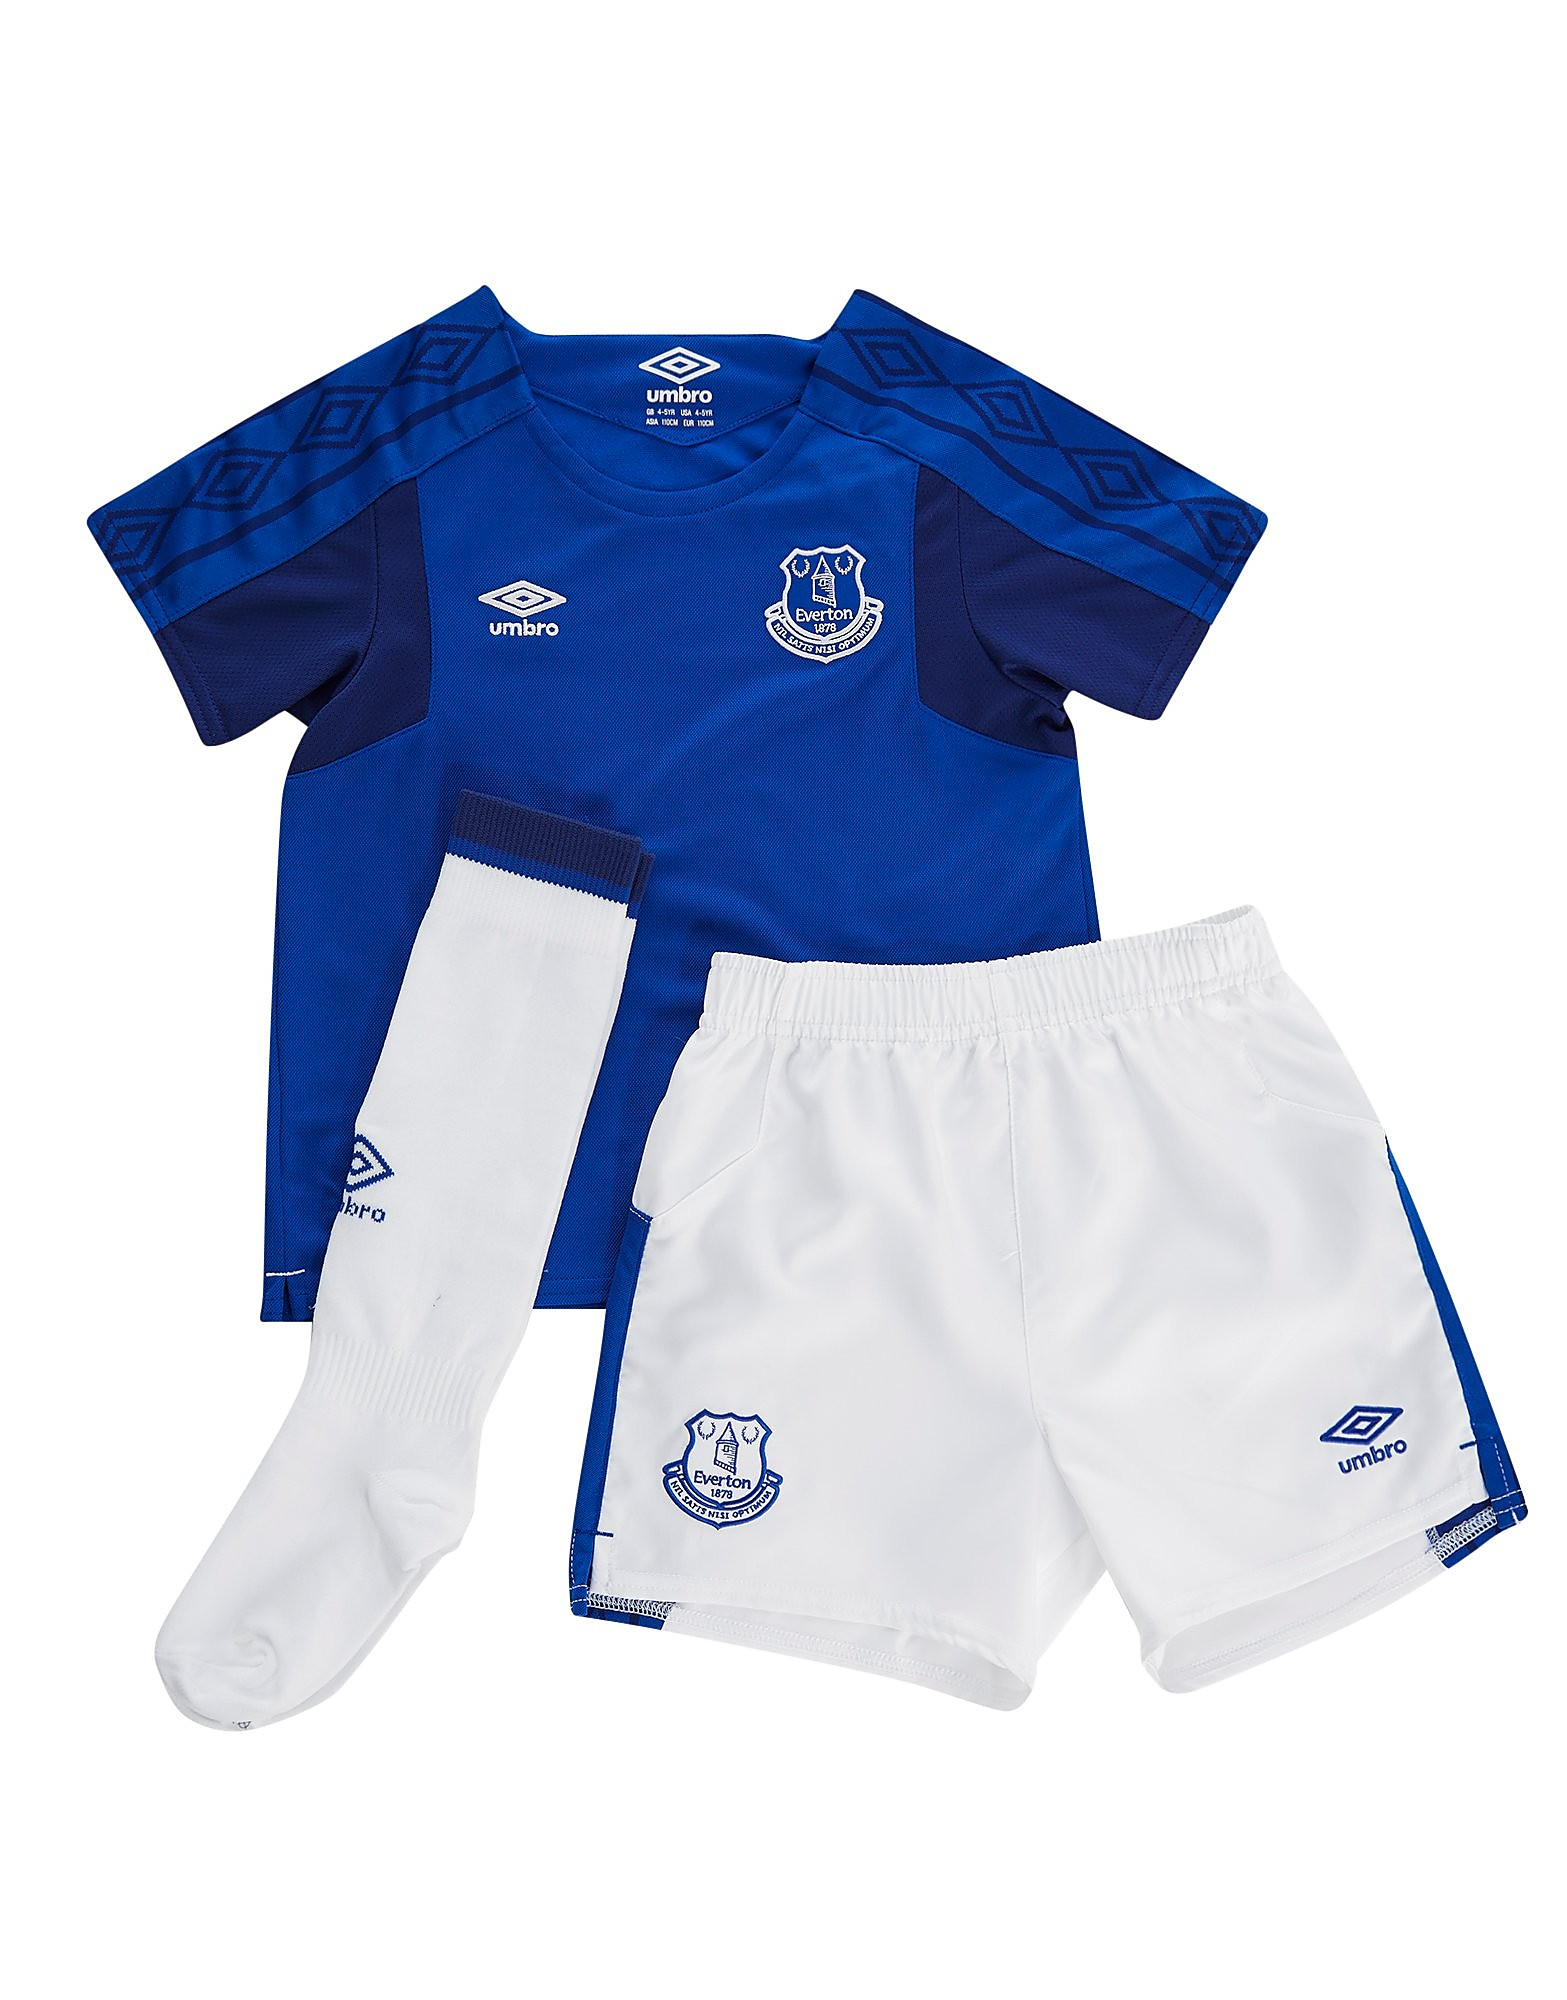 Umbro Everton FC 2017/18 Home Kit Children